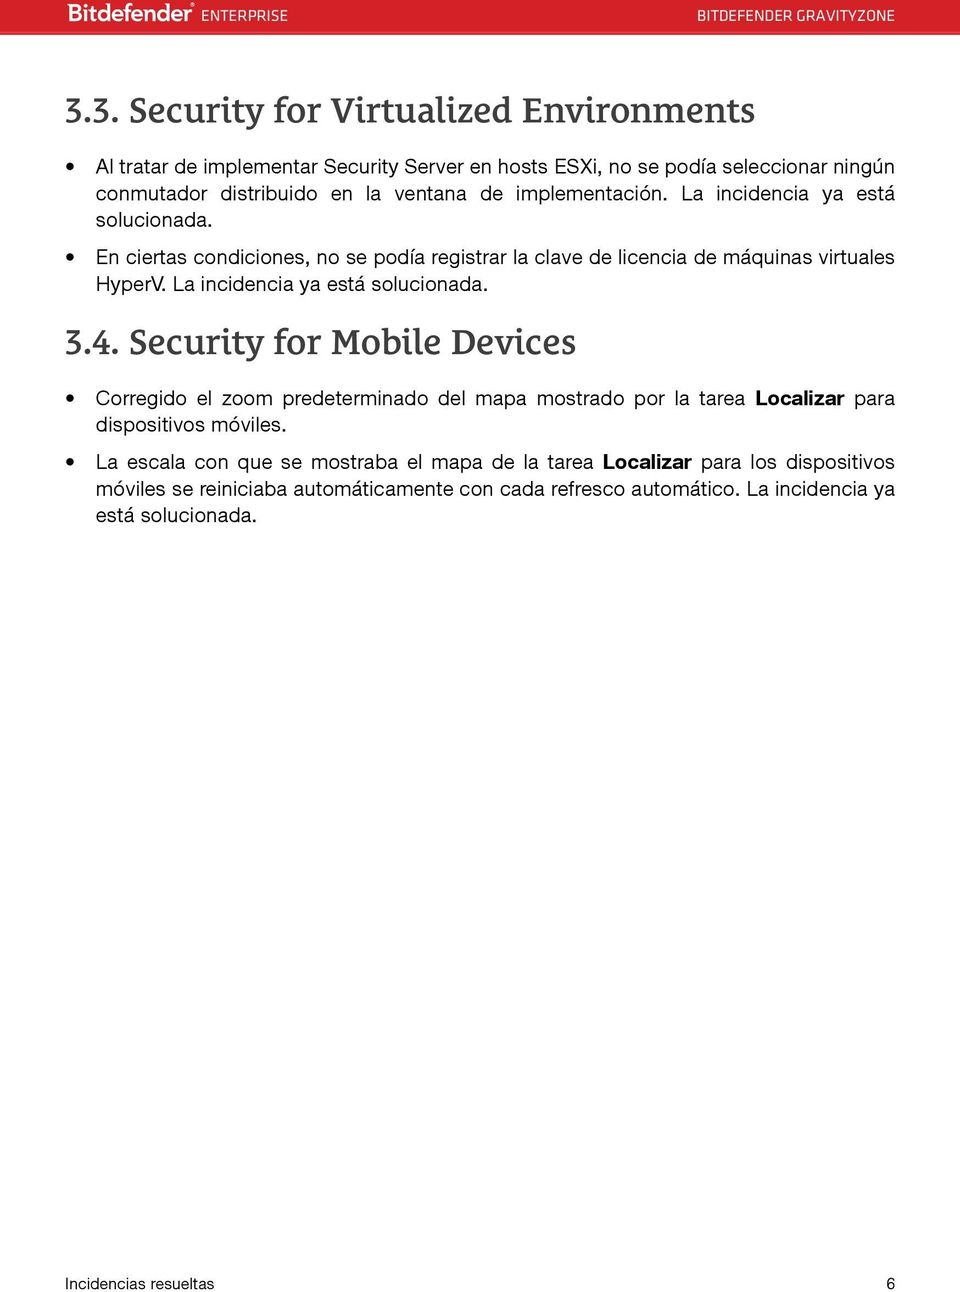 La incidencia ya está solucionada. 3.4. Security for Mobile Devices Corregido el zoom predeterminado del mapa mostrado por la tarea Localizar para dispositivos móviles.